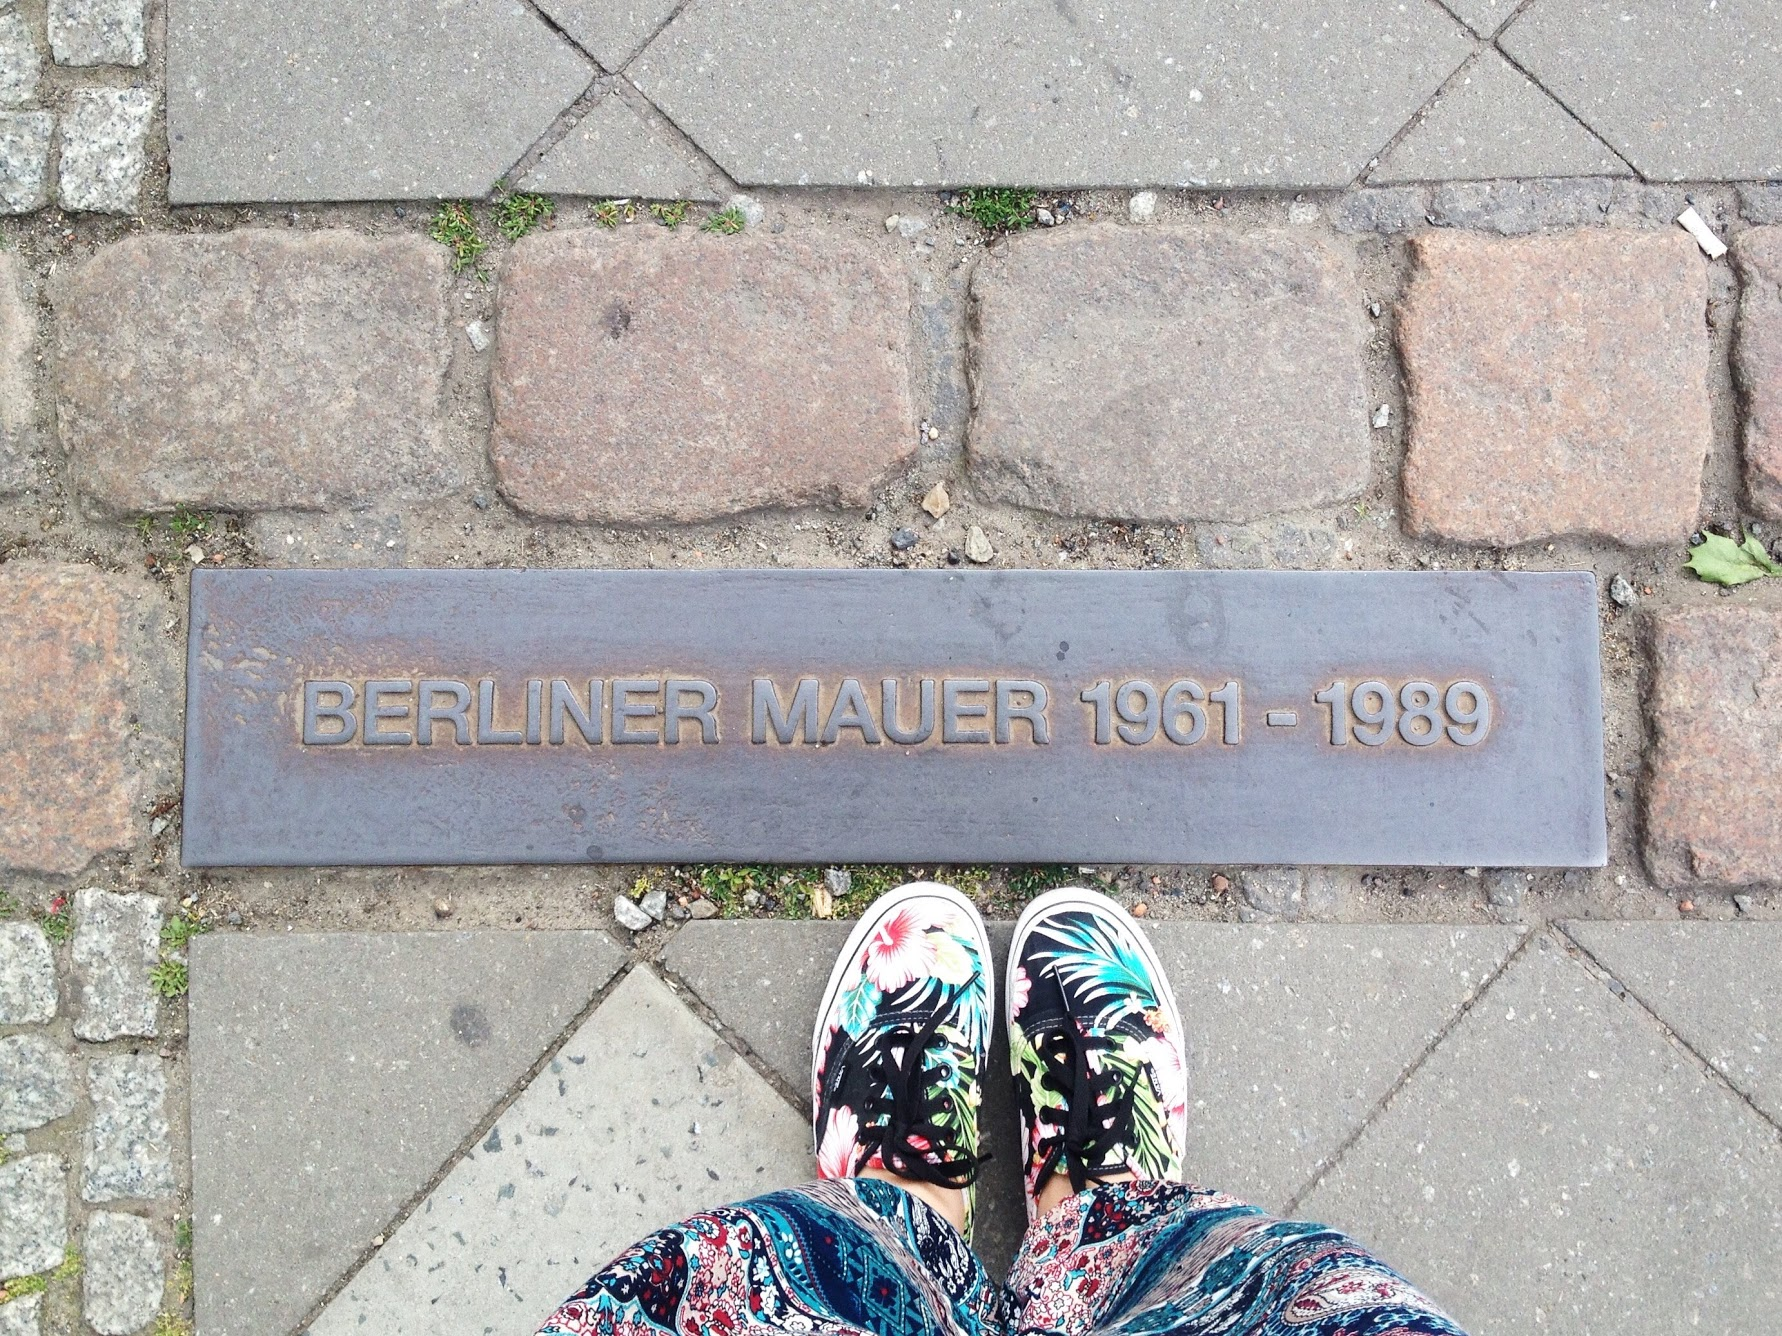 Site of Berlin wall